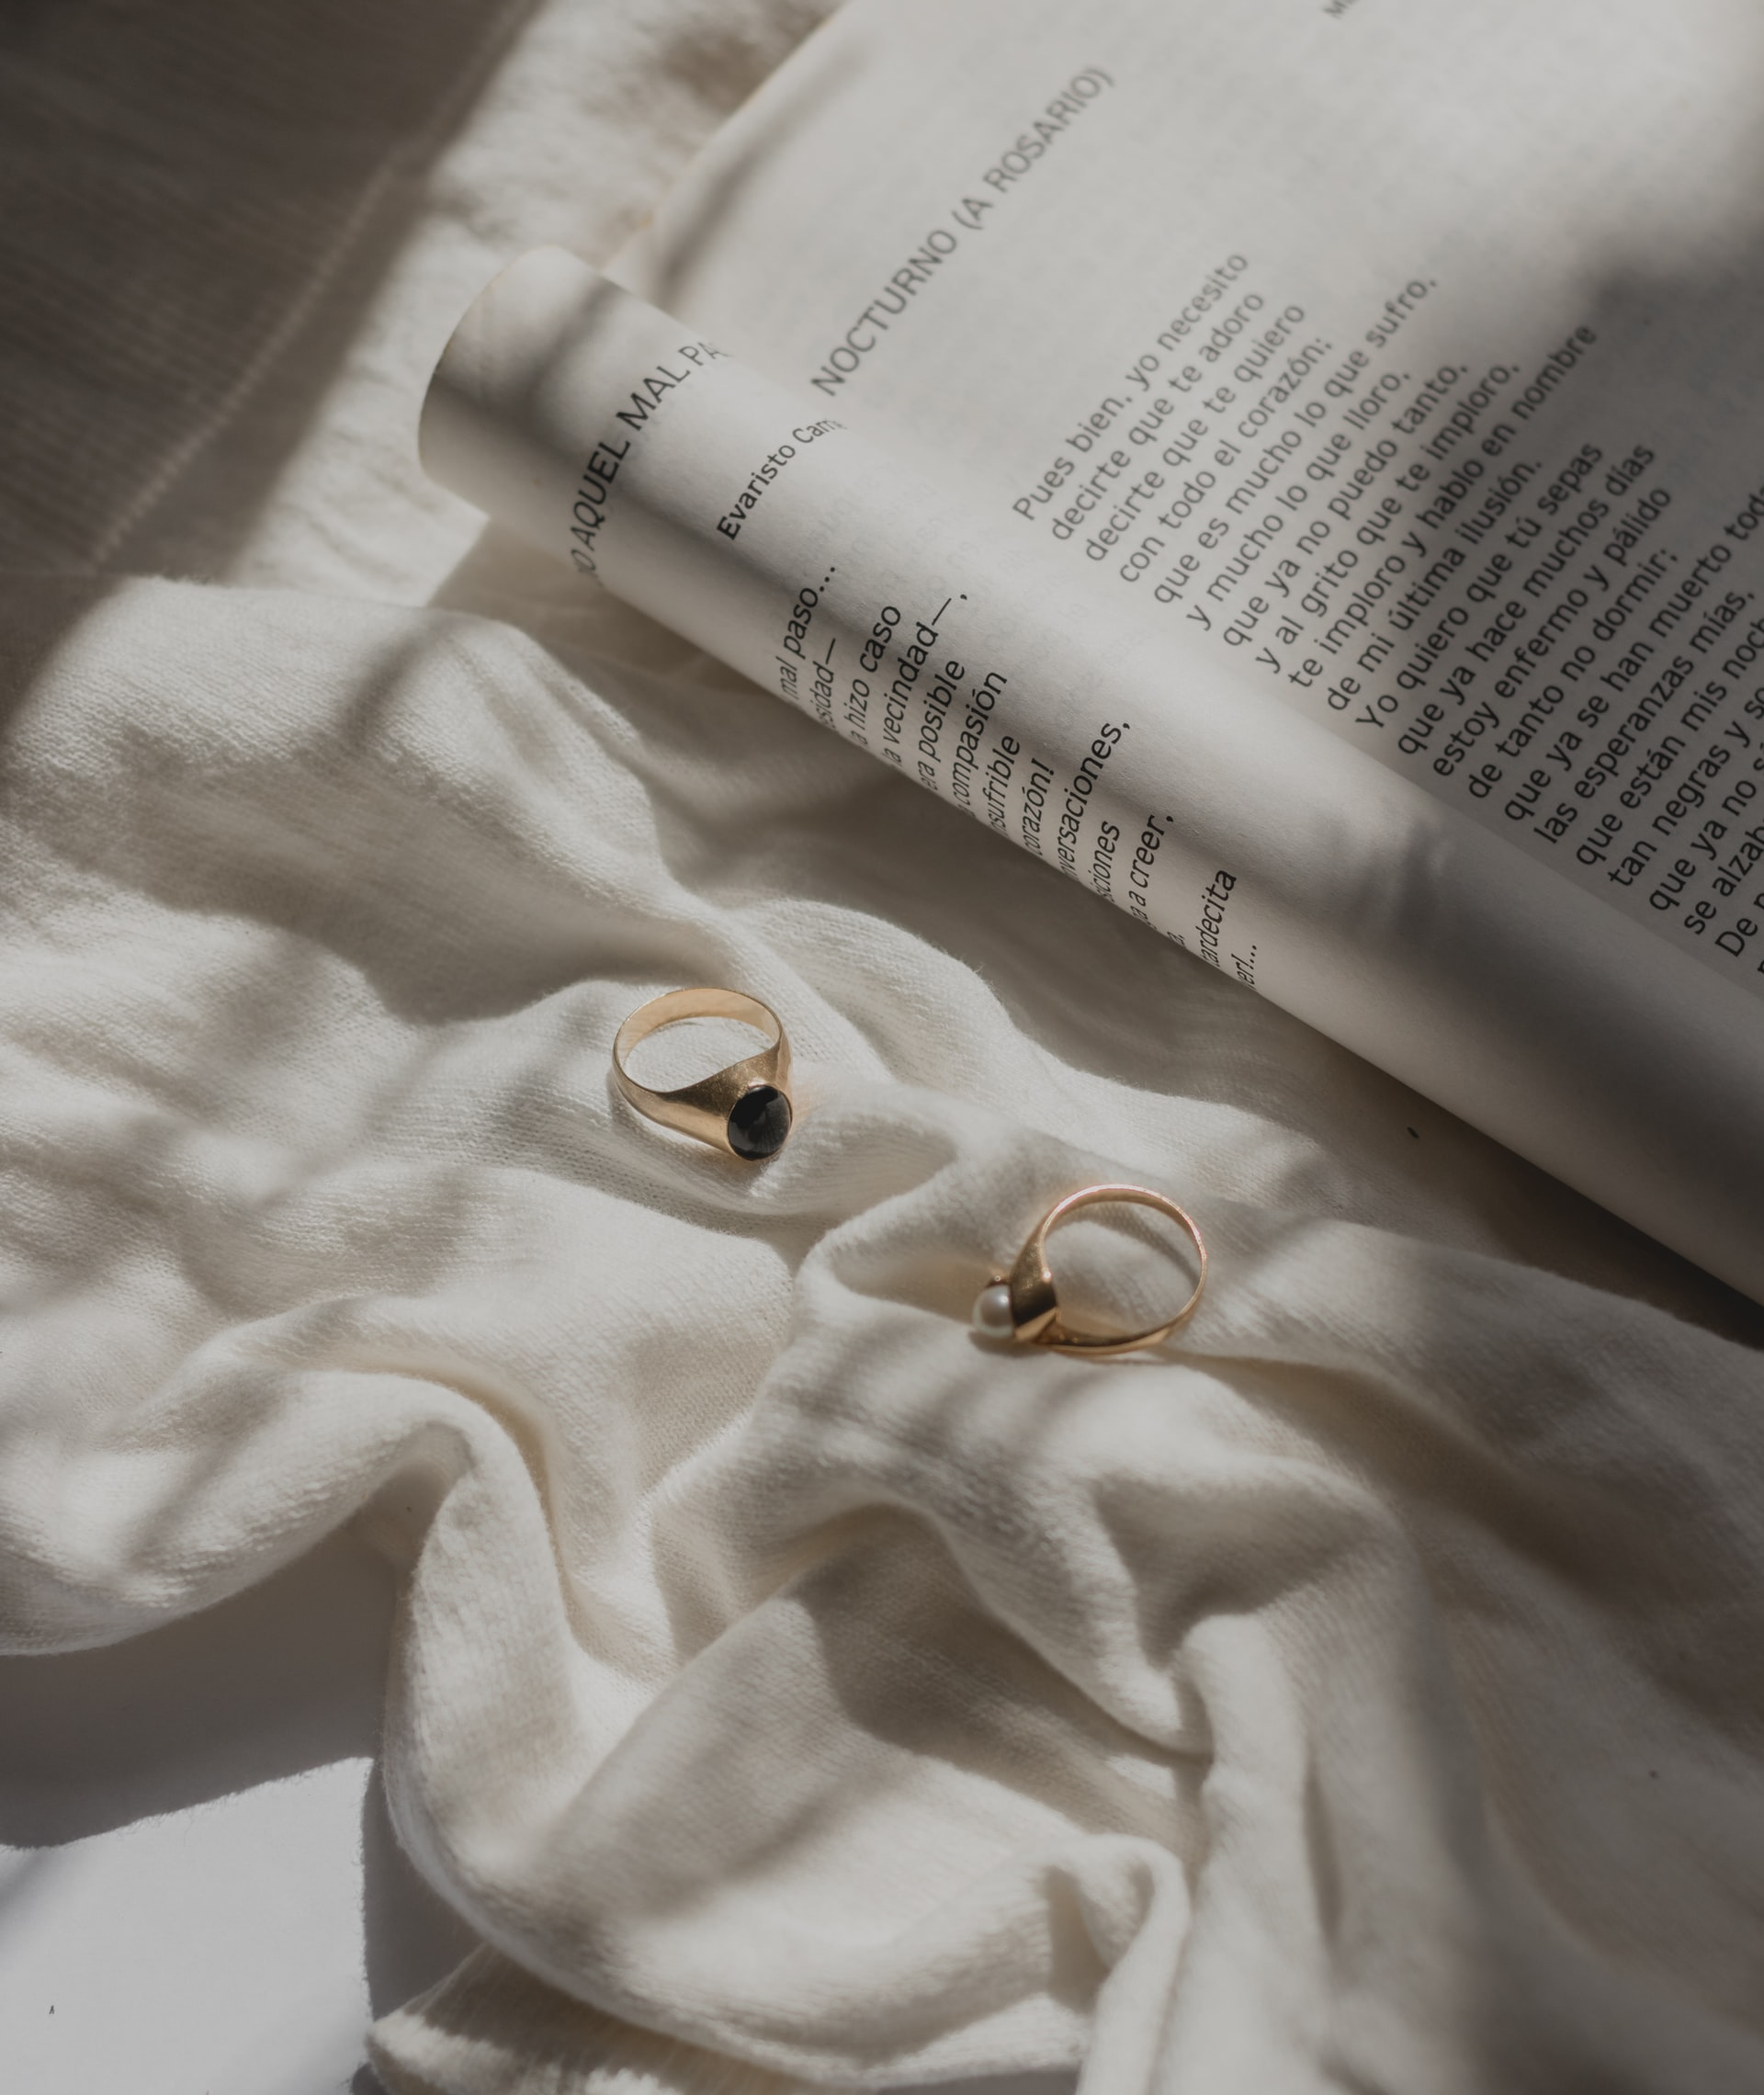 gold rings laid out on blanket next to a book